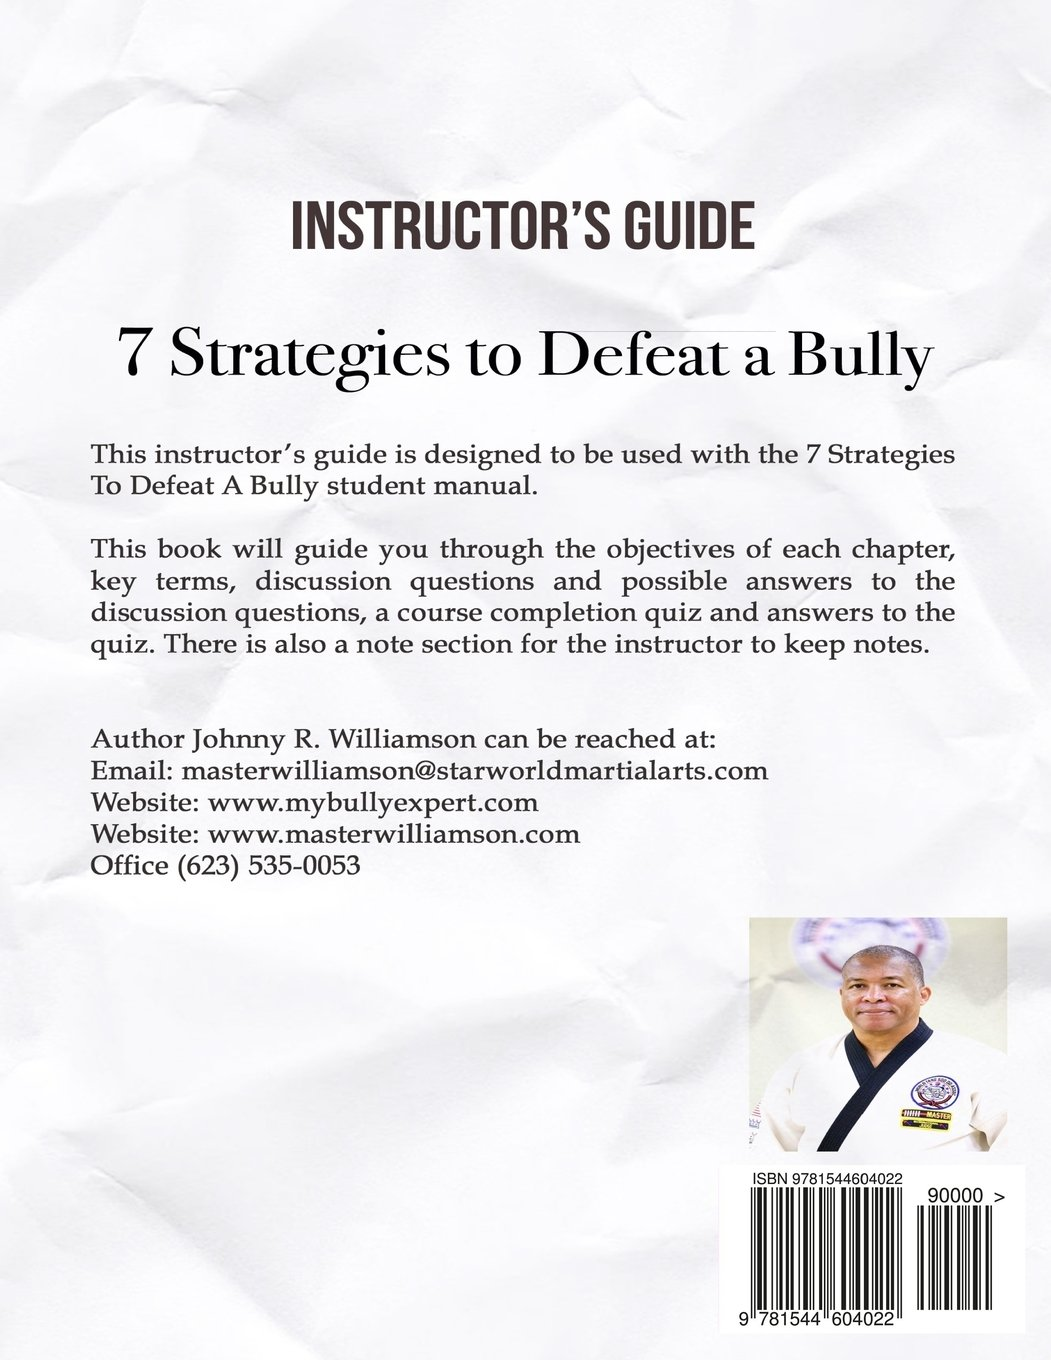 Instructor Guide 7 Strategies to Defeat a Bully: Johnny R